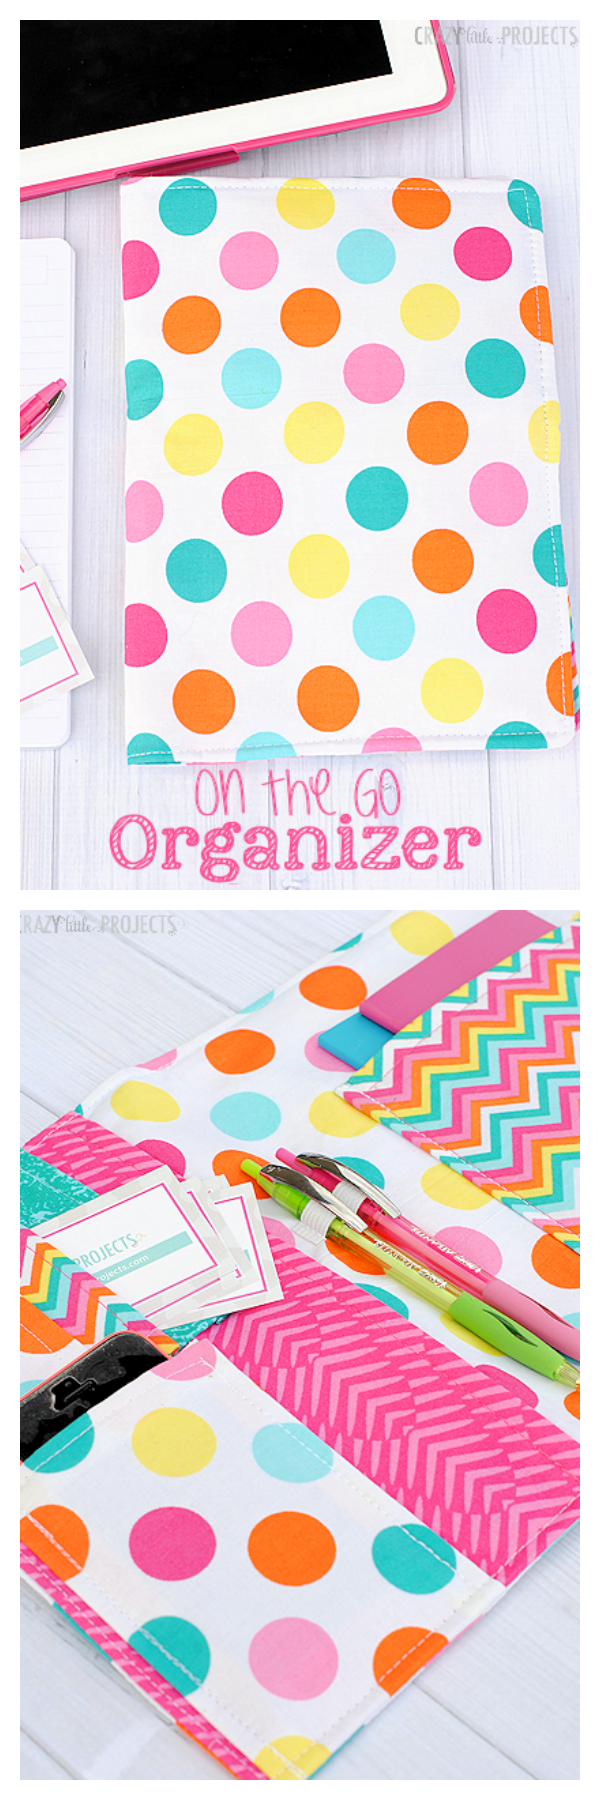 On the Go Organizer-DIY Notebook Cover! Holds notebooks, pens, to do lists cards. phone and everything else you need